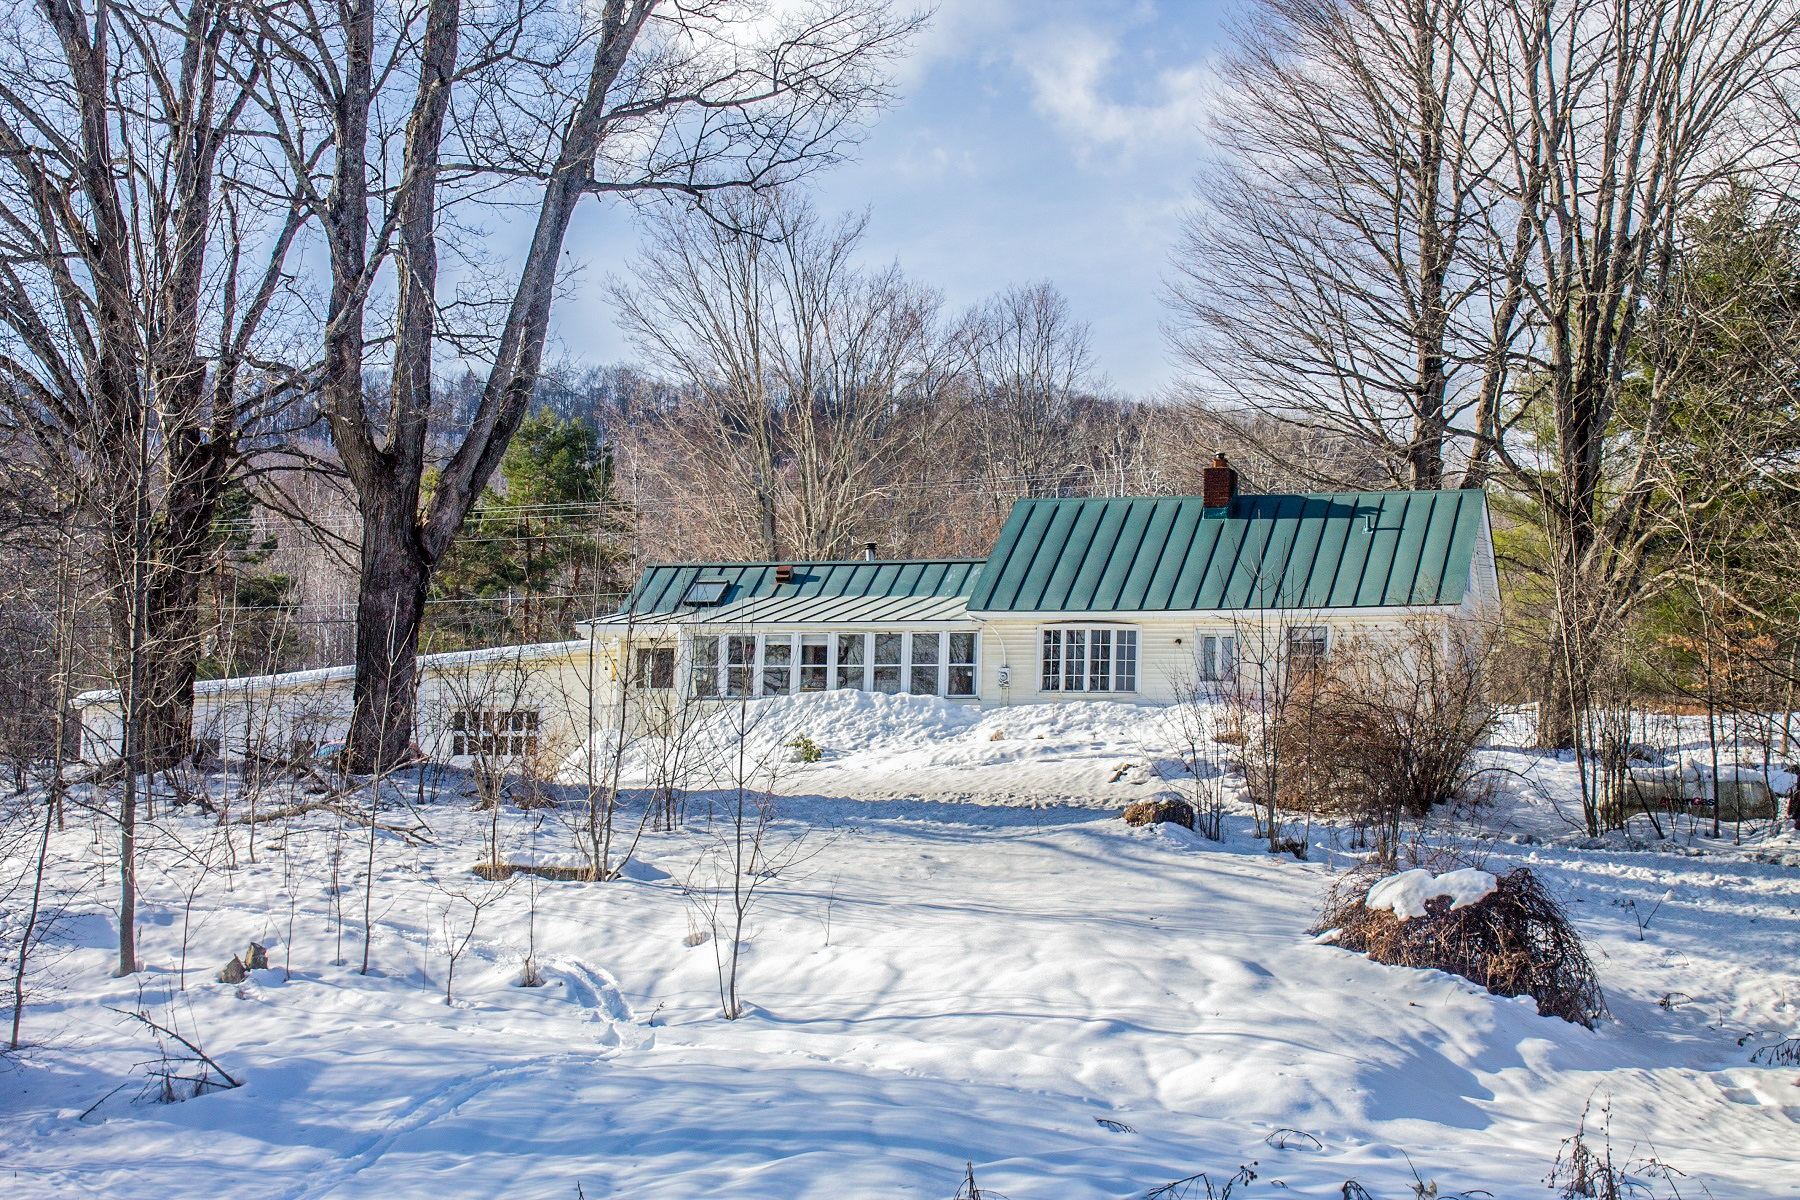 Single Family Home for Sale at Three Bedroom Cape in Williamstown on 43 Acres 604 Rood Pond Rd Williamstown, Vermont 05679 United States